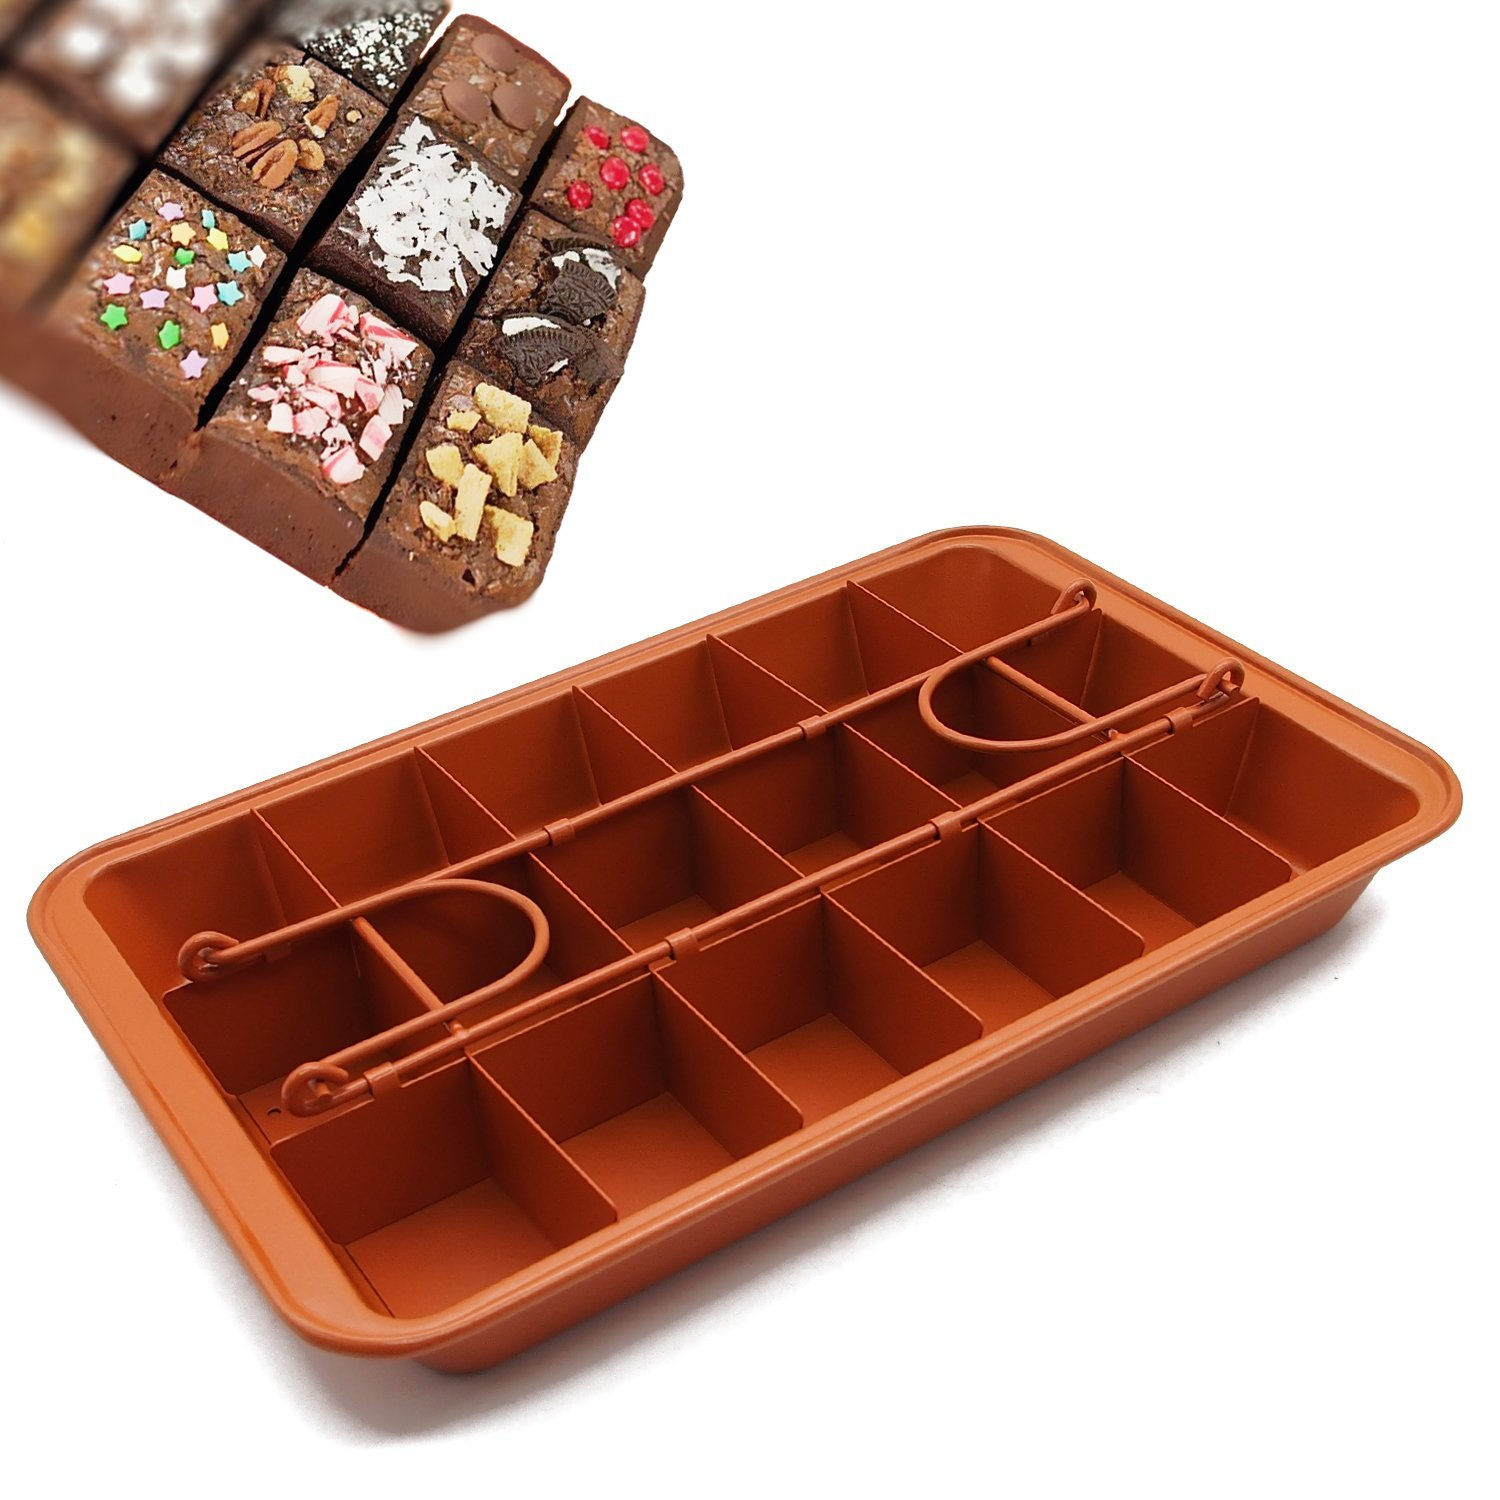 Non-stick Chocolate Brownie Pan with Dividers, 18-cavity Rectangle Bakeware with Removable Loose Bottom, Heavy-duty Built-In Slicer Brownie Tray - 12.20'' x 7.87'' x 1.57''